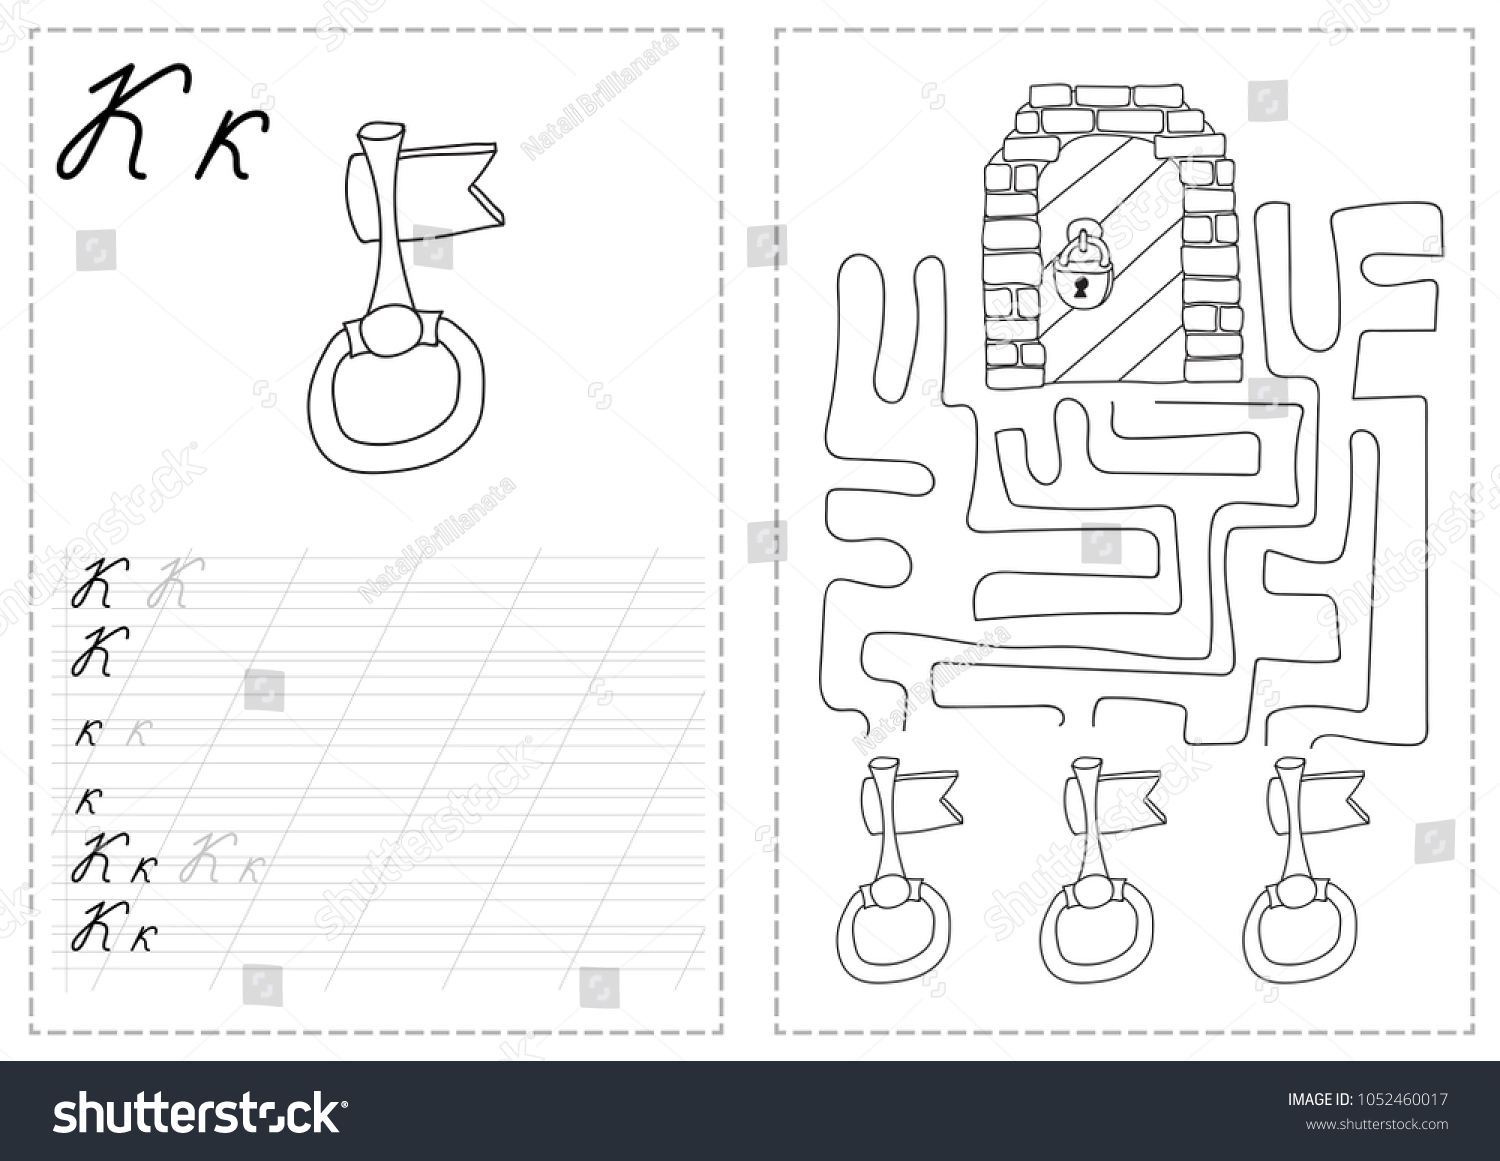 Letter Tracing Template Yelomphonecompany